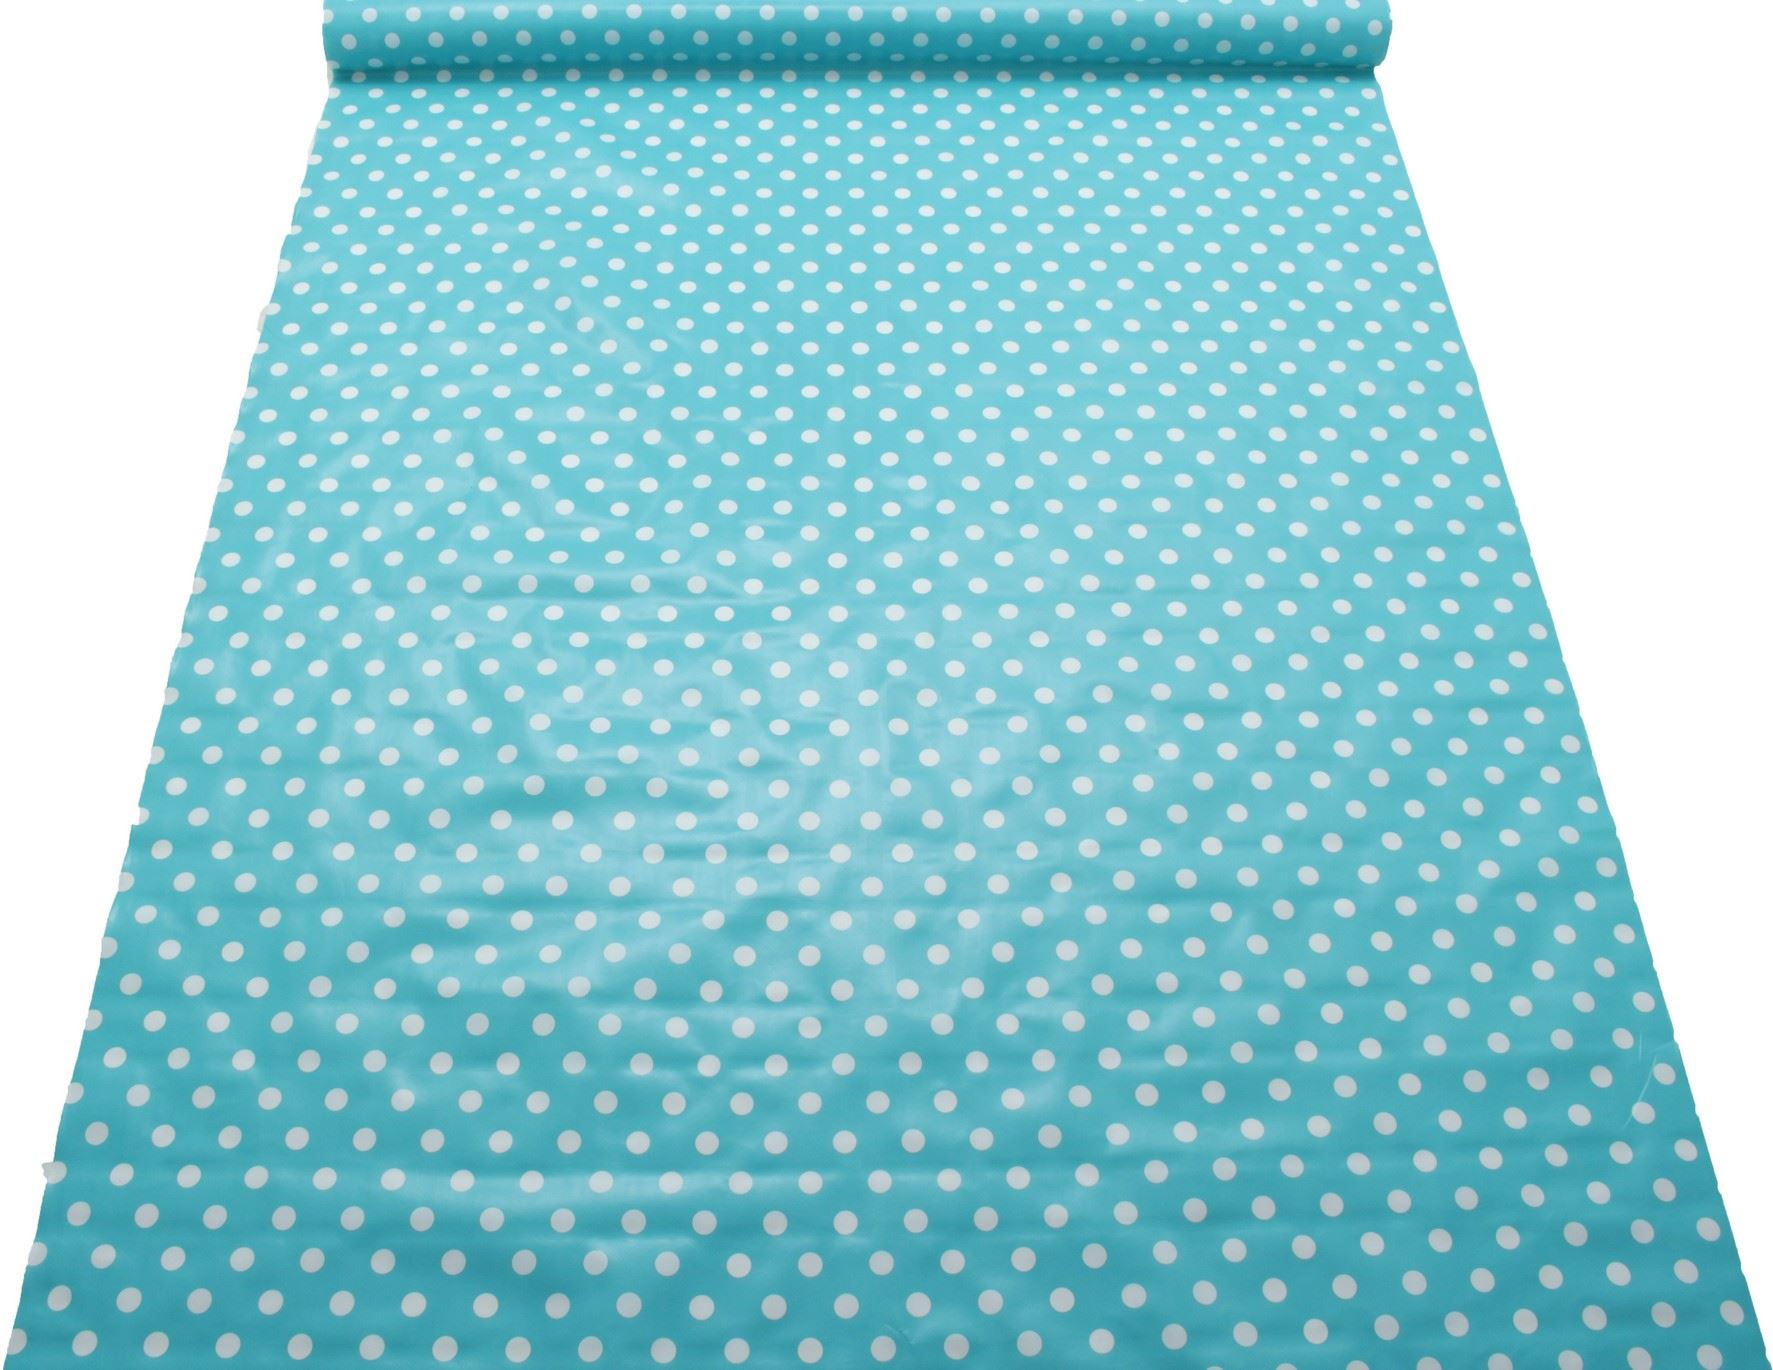 Floral Gingham Polka Dot Print Pvc Coated Covering